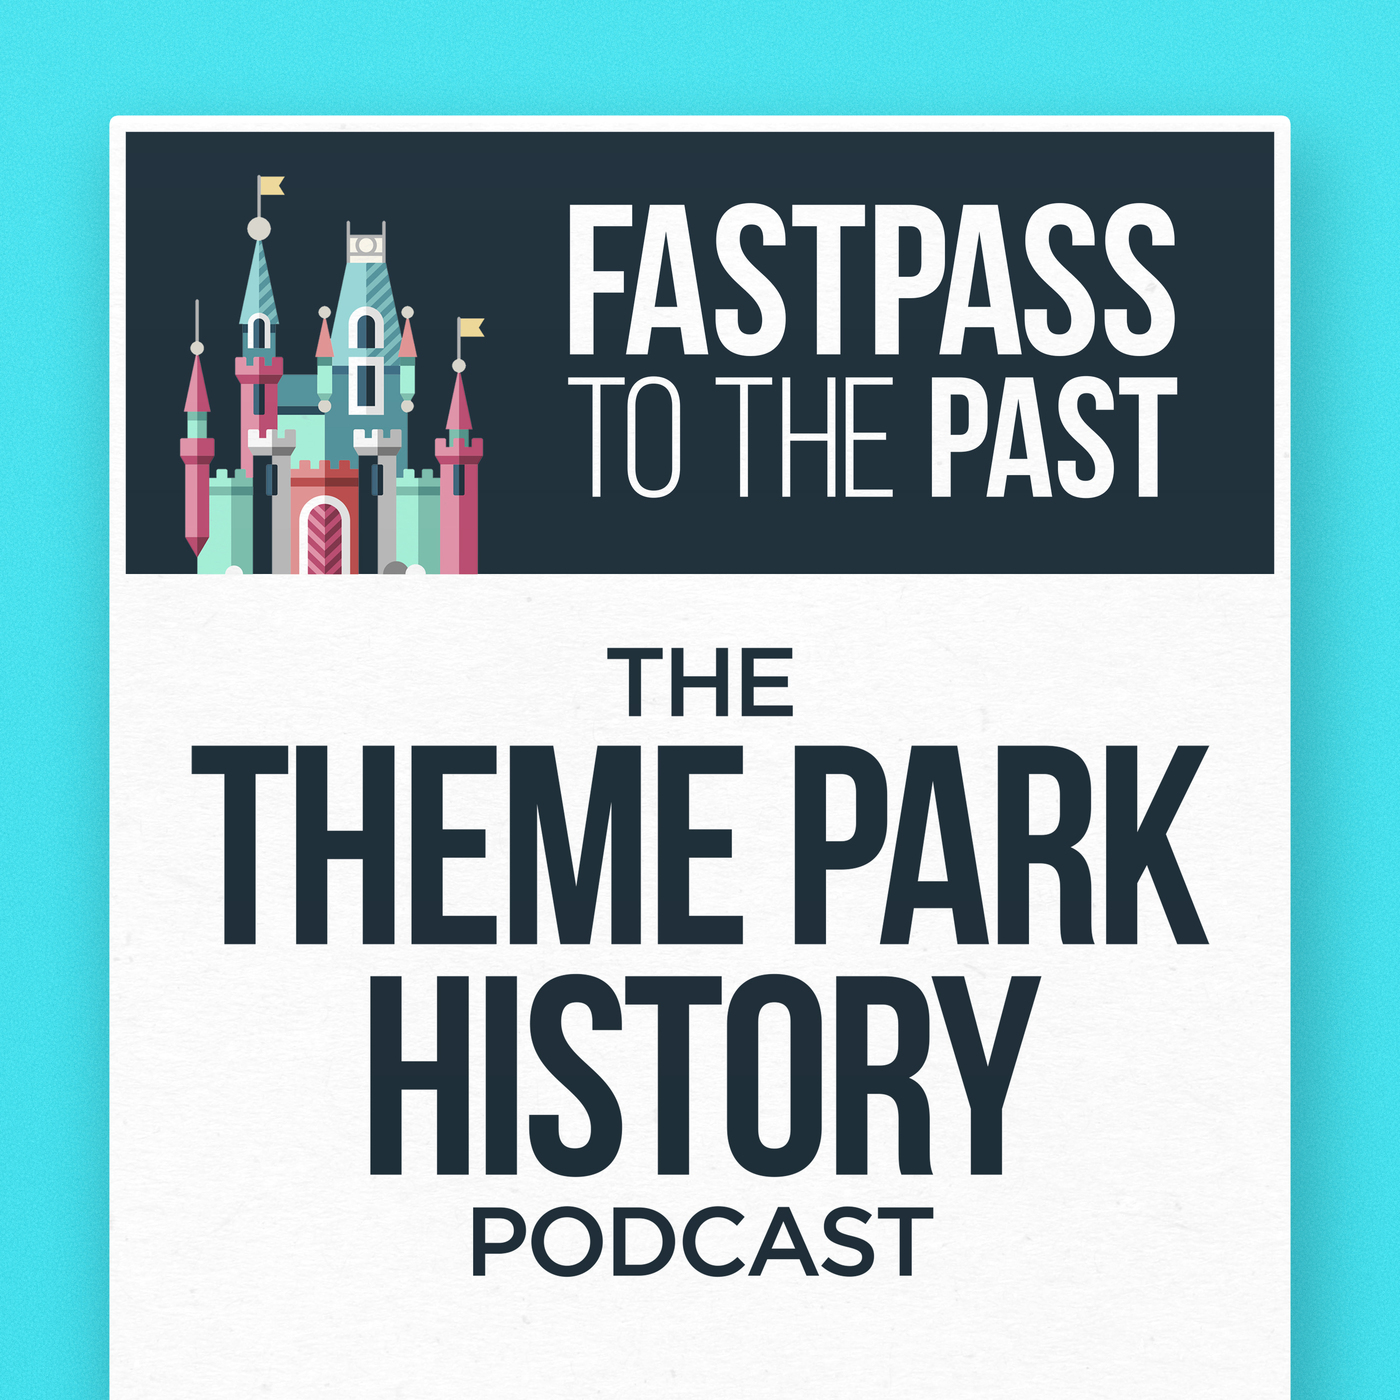 Fastpass to the Past: The Theme Park History Podcast: Episode 12 - Lost Resorts: Disney's Mineral King Ski Village